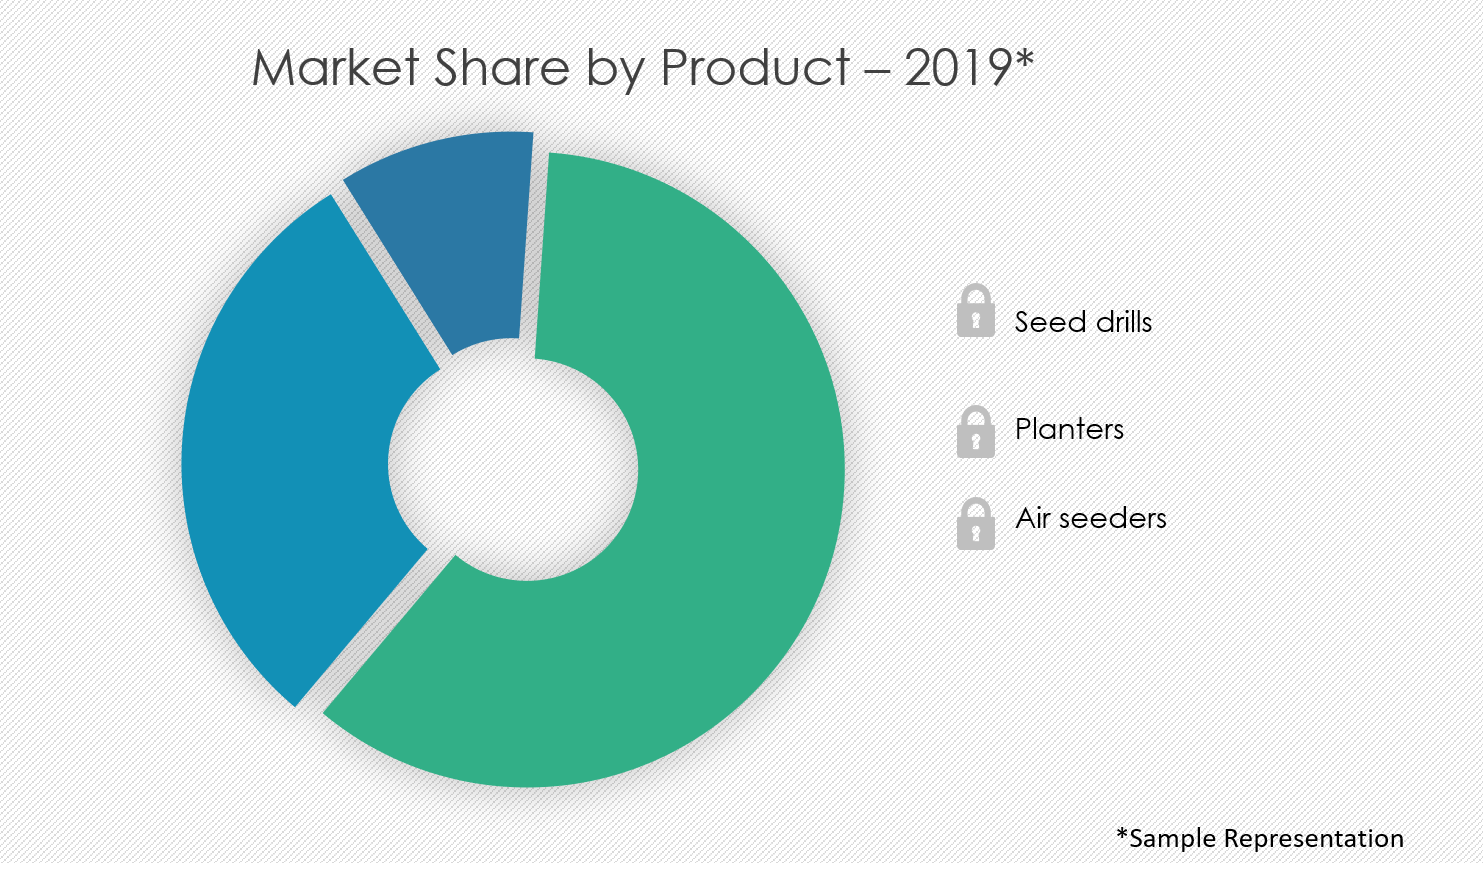 Planting-Equipment-Market-Share-by-Product